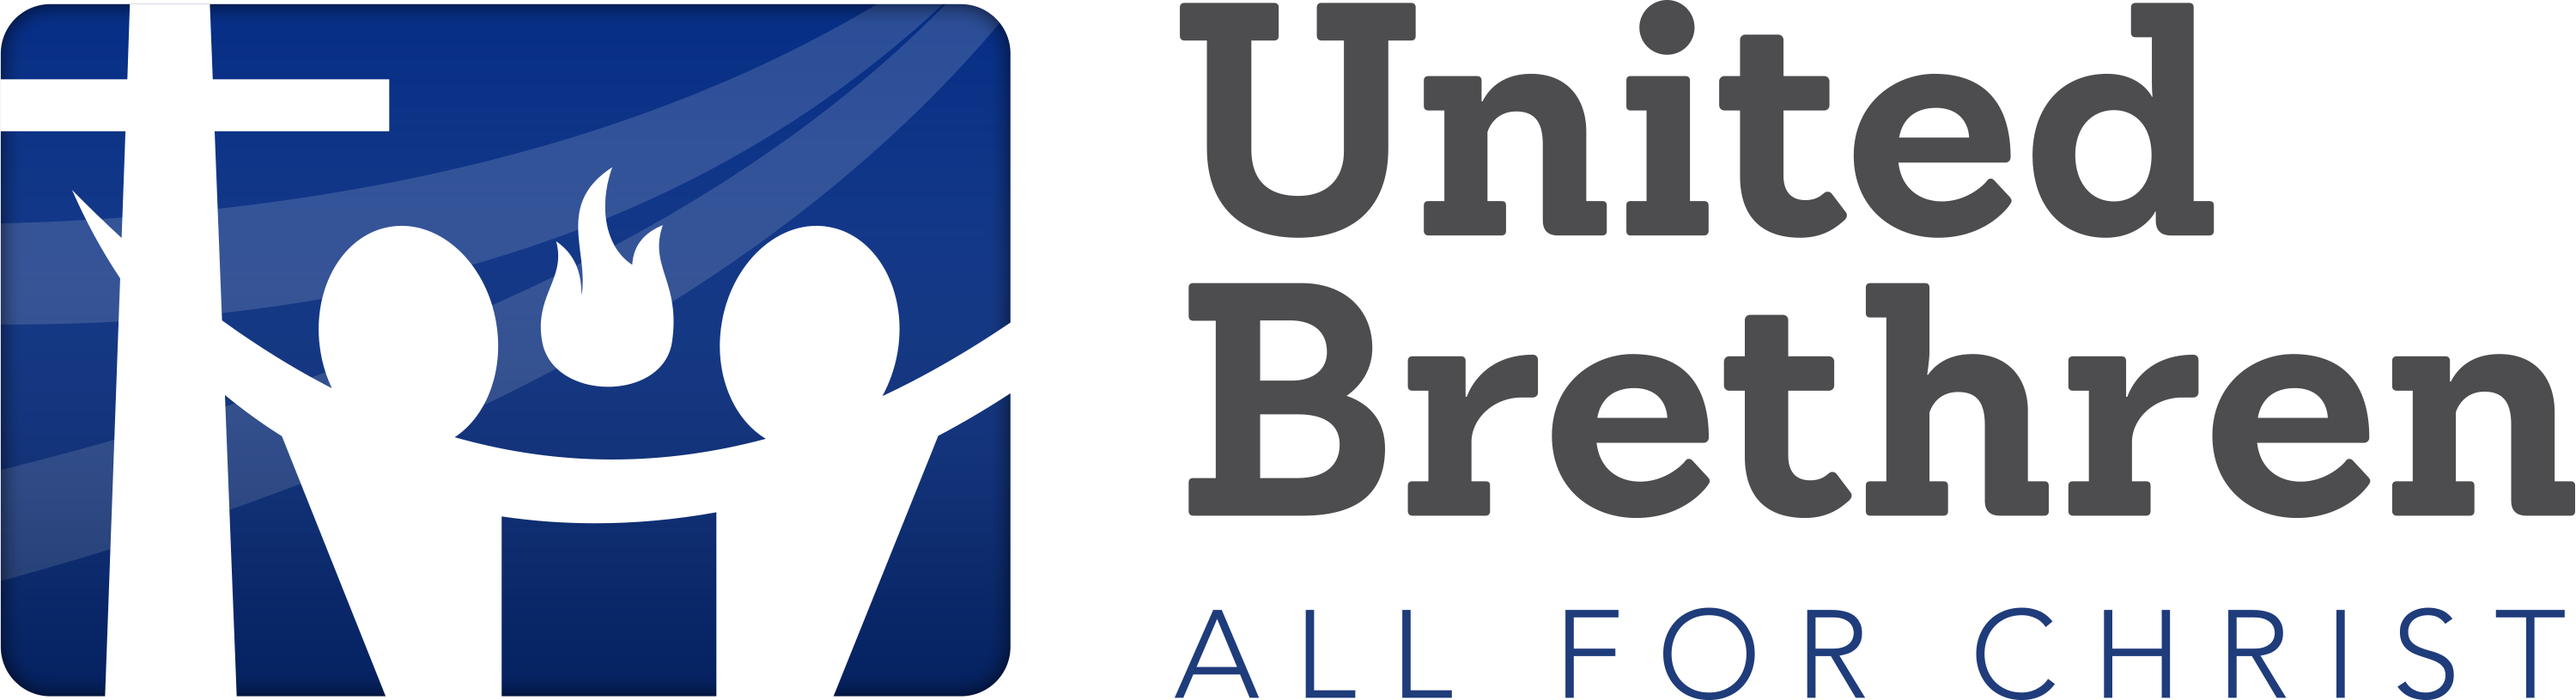 United Brethren: All For Christ